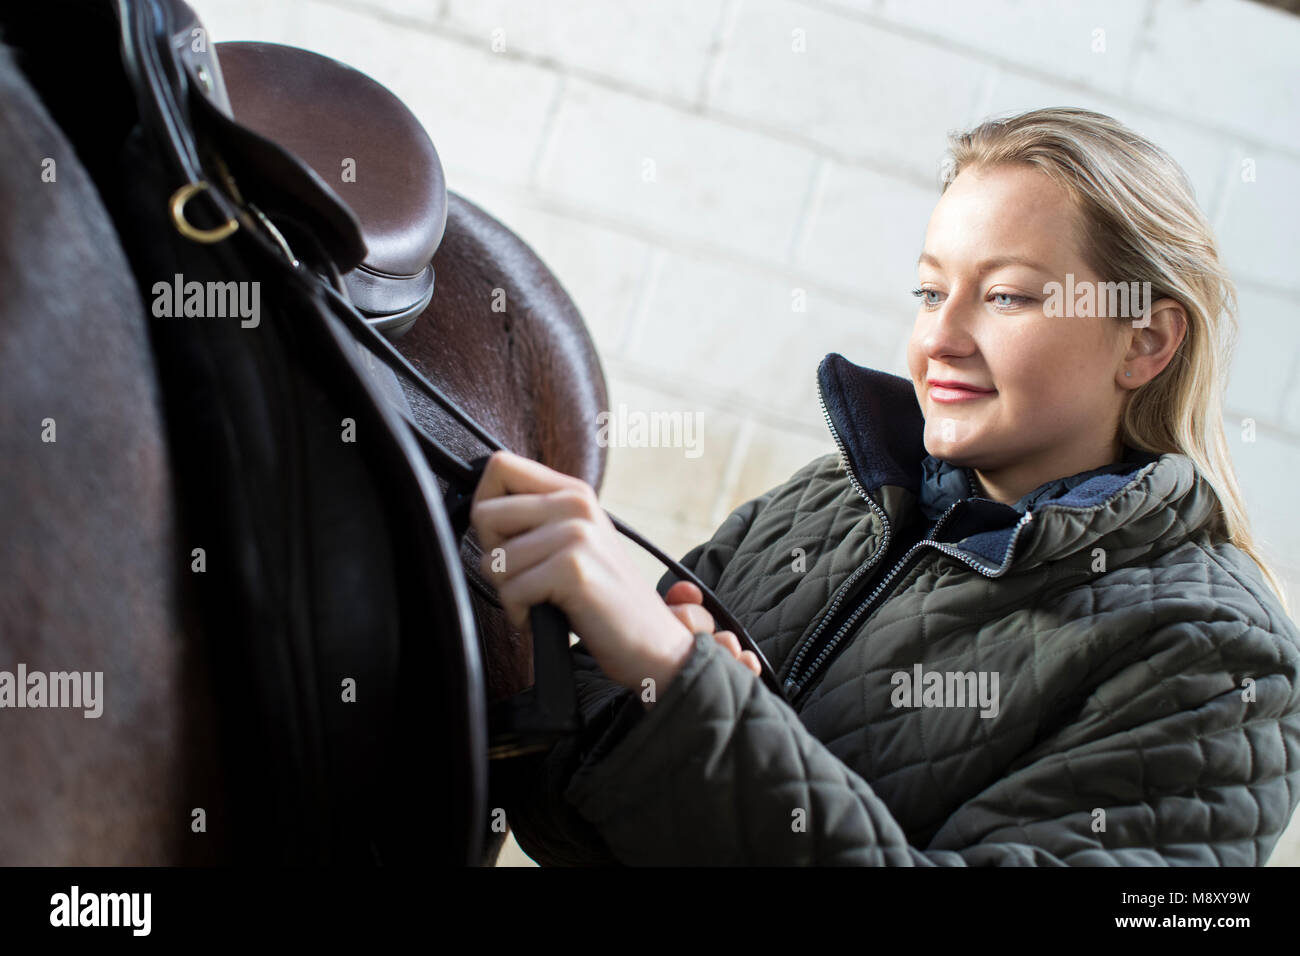 Female Owner Adjusting Saddle Straps In Stable With Horse - Stock Image